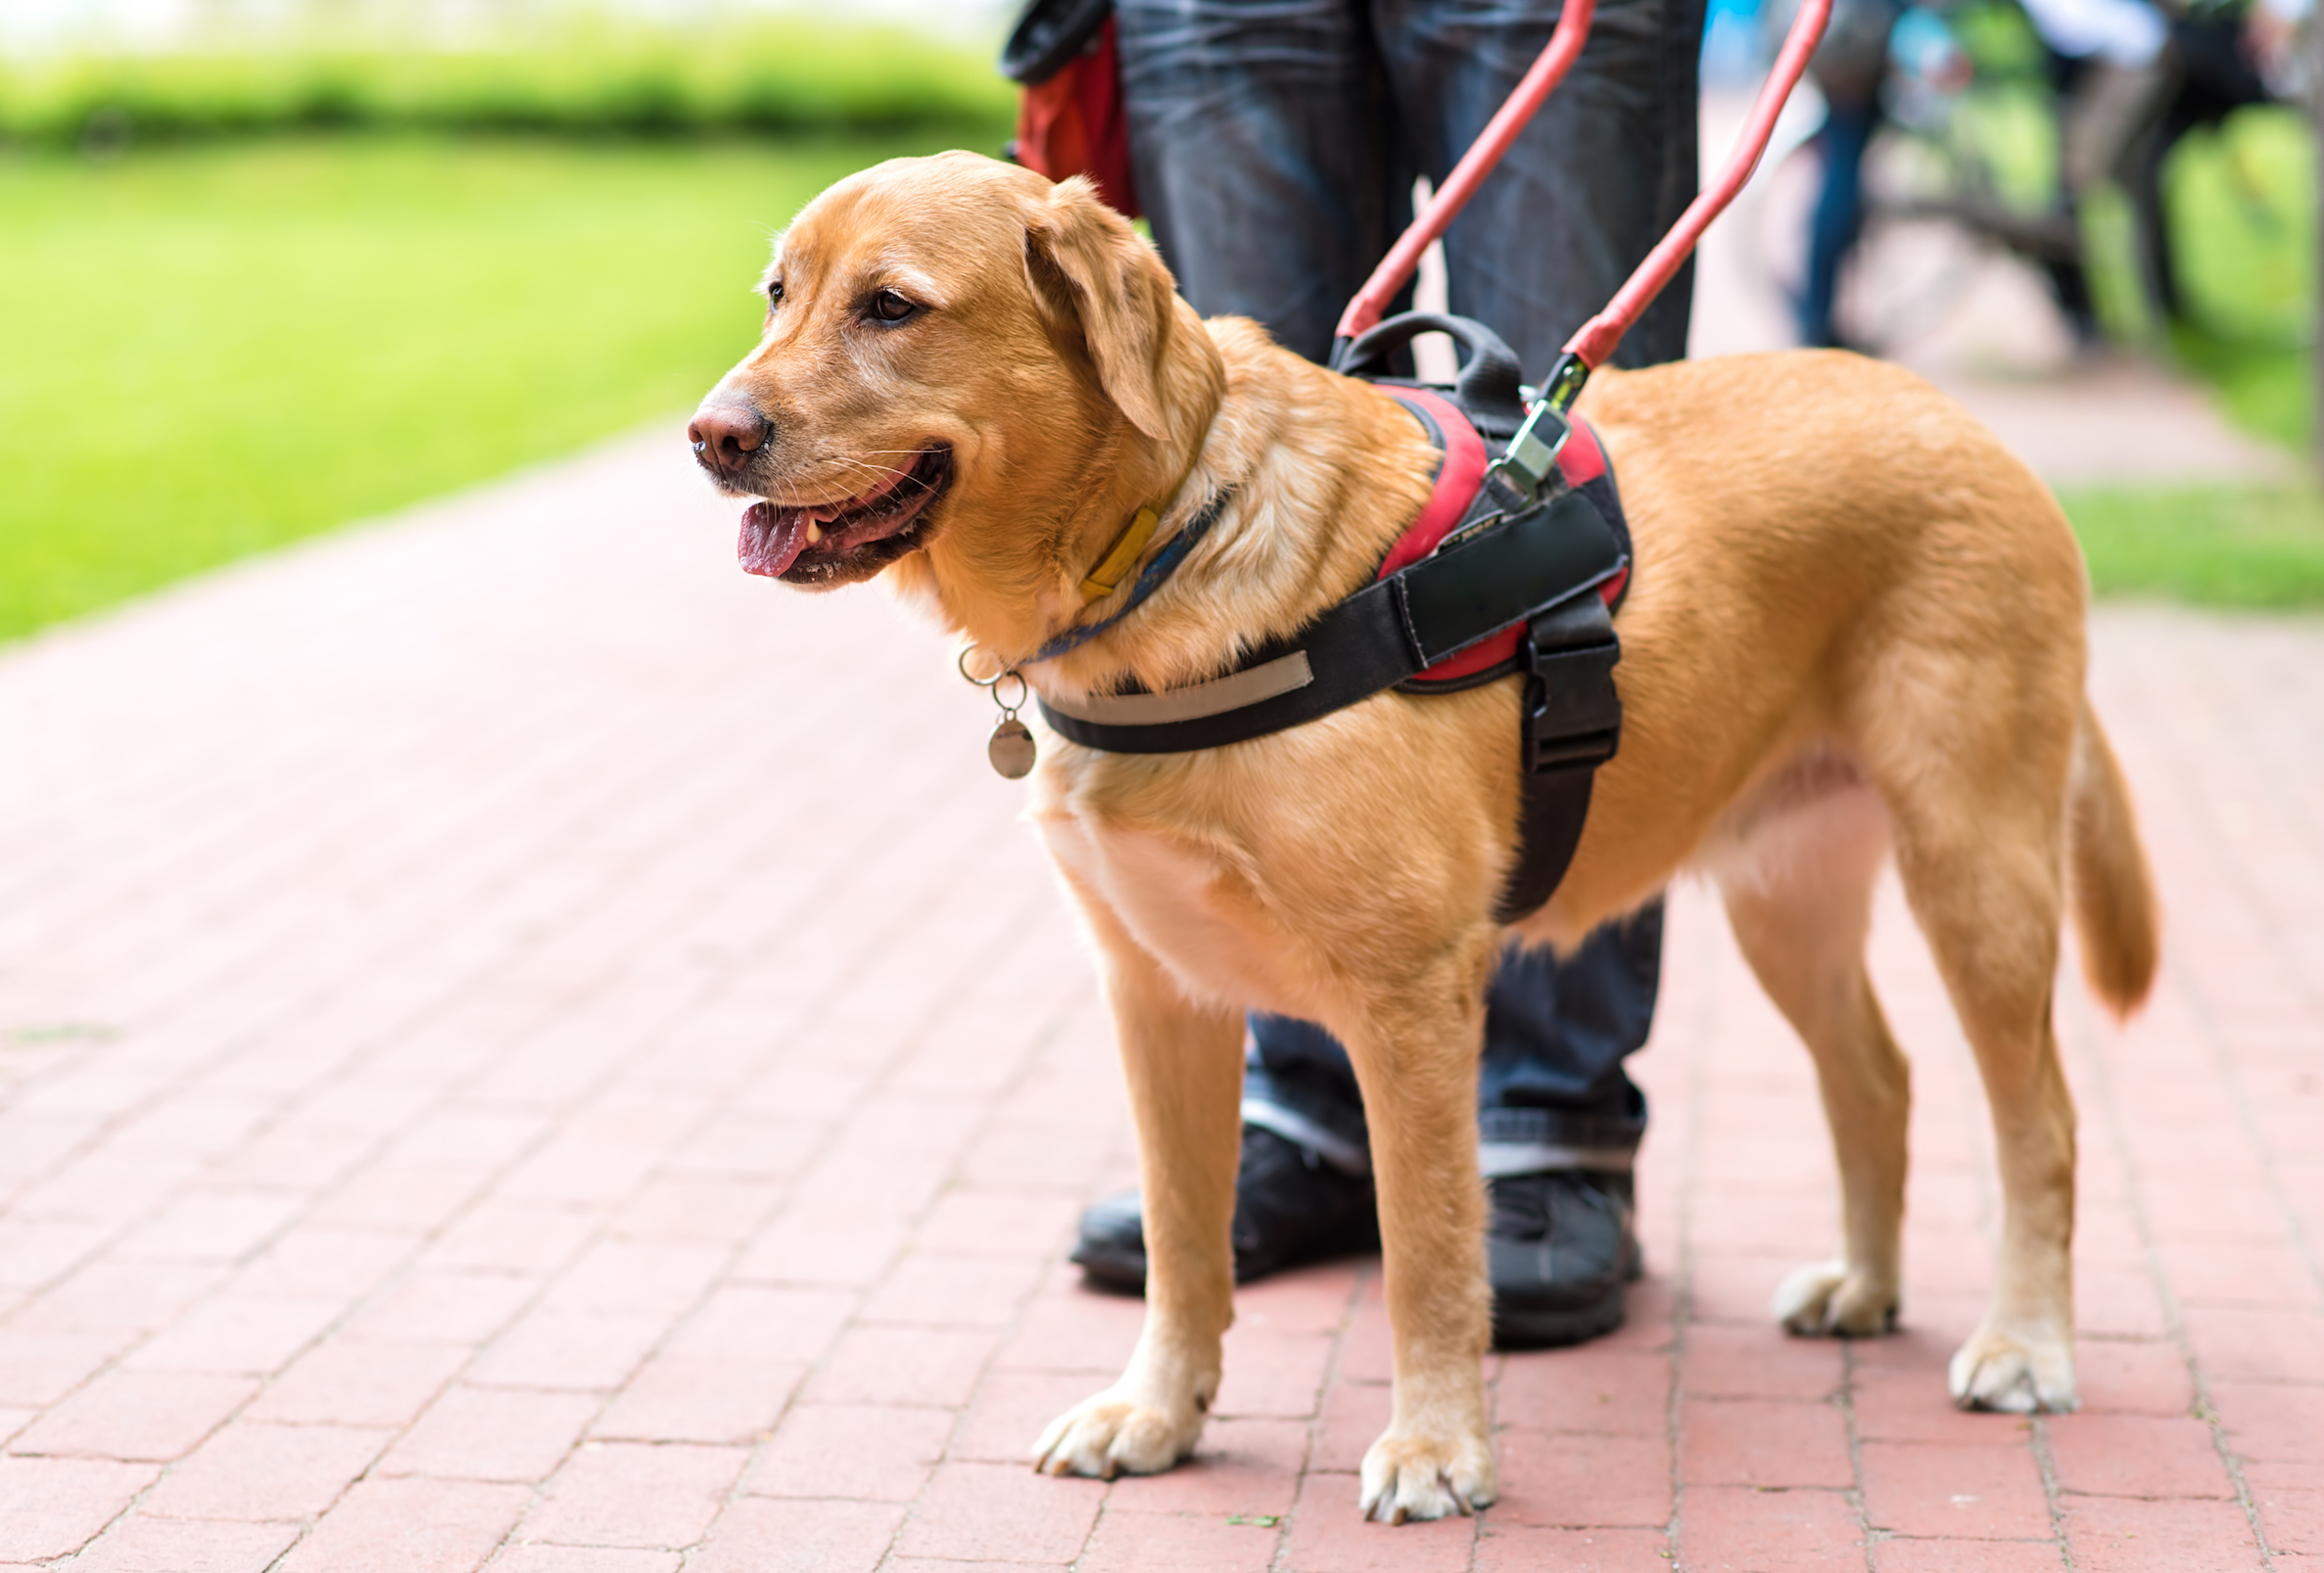 New research took an in-depth look at guide dogs with overprotective and how it impacted their performance.